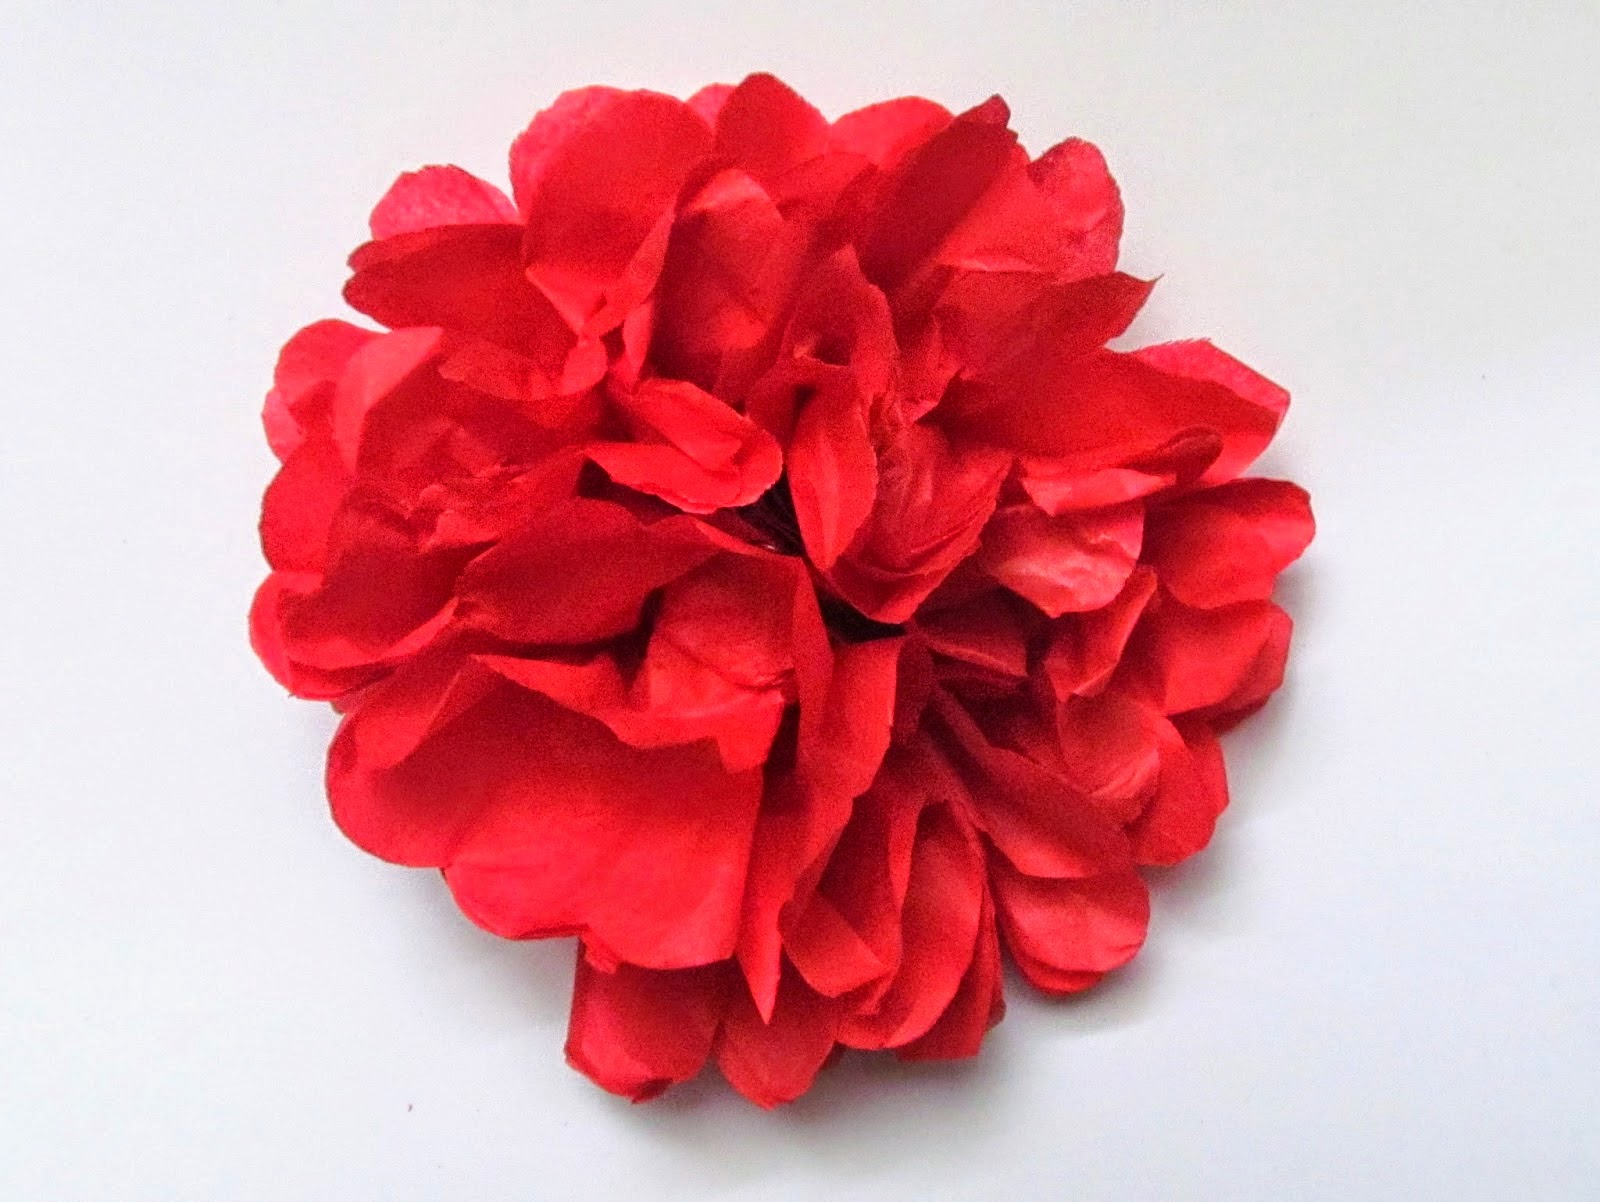 http://pinkflamingohandcrafting.blogspot.co.uk/2014/04/how-to-make-tissue-paper-flowers.html